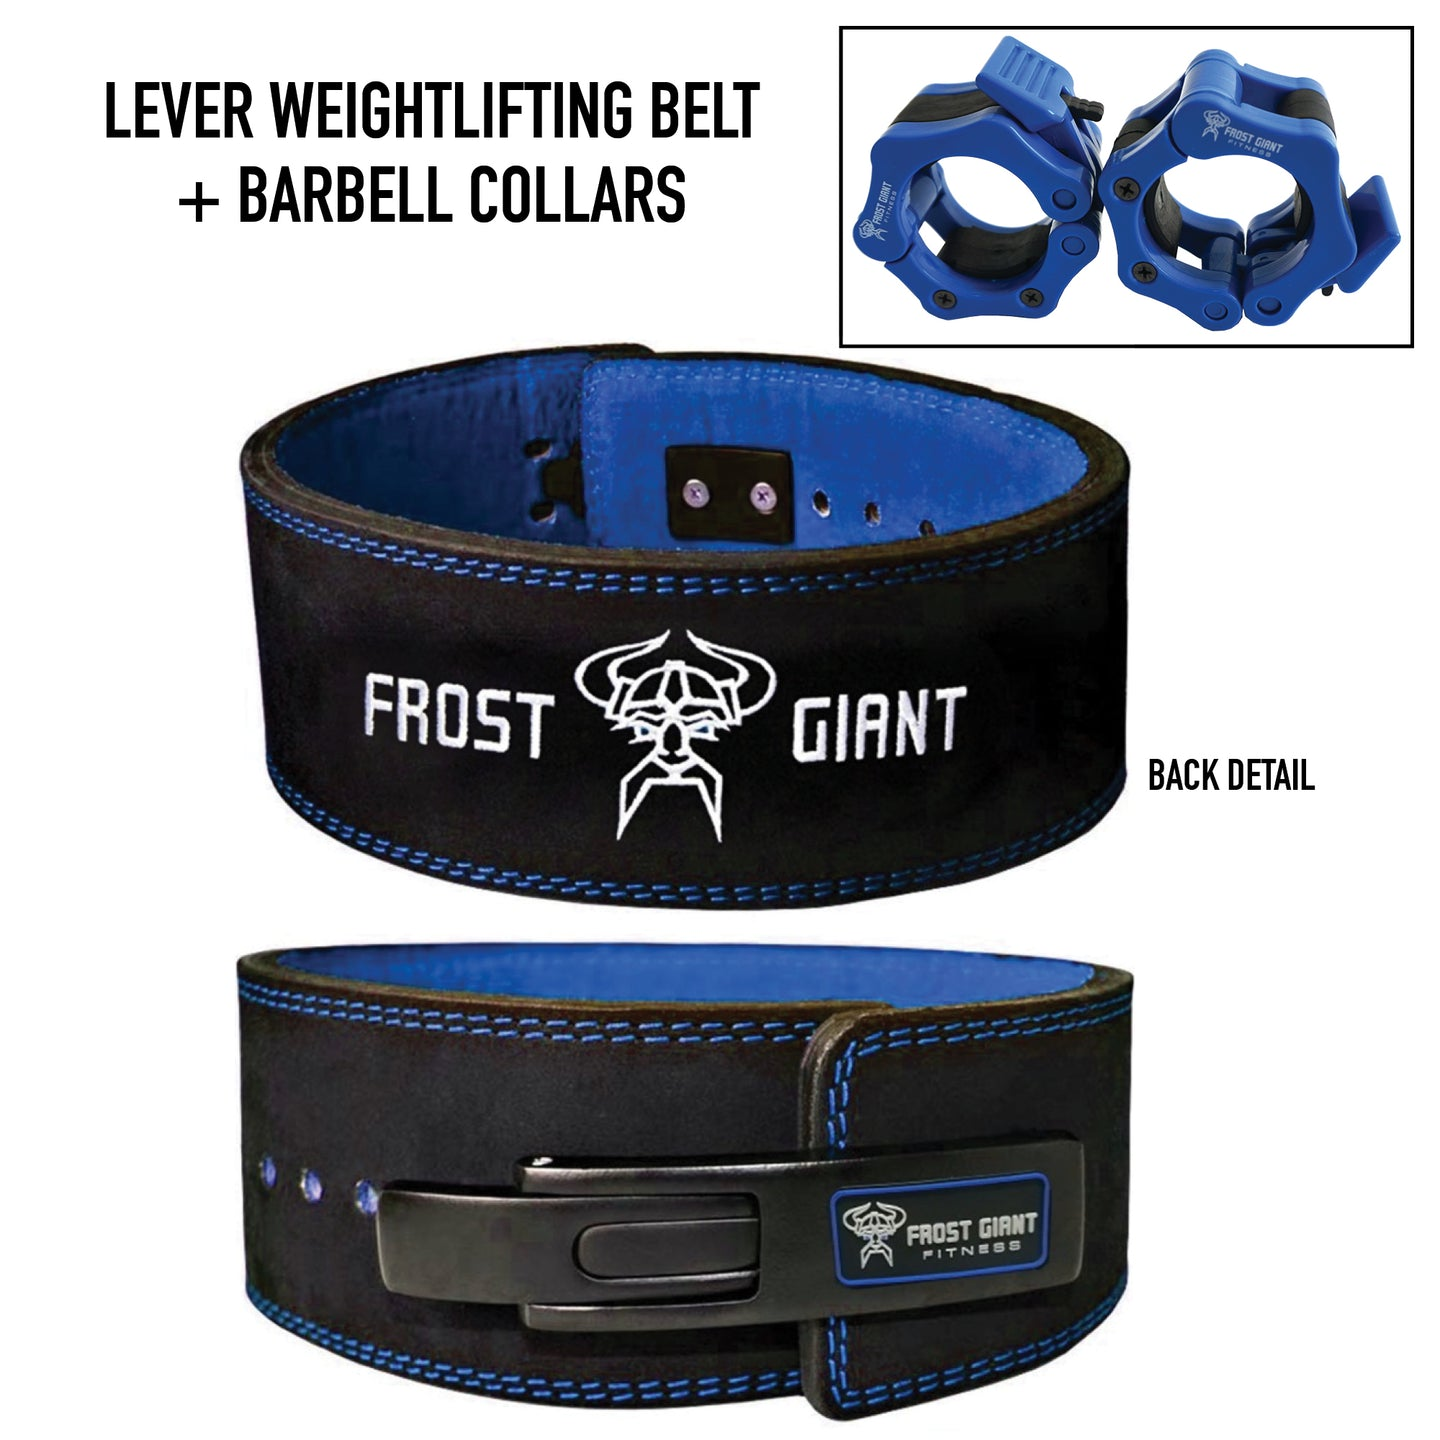 Lever Weightlifting Belt Premium Suede Leather 8 MM With Free Barbell Clamps